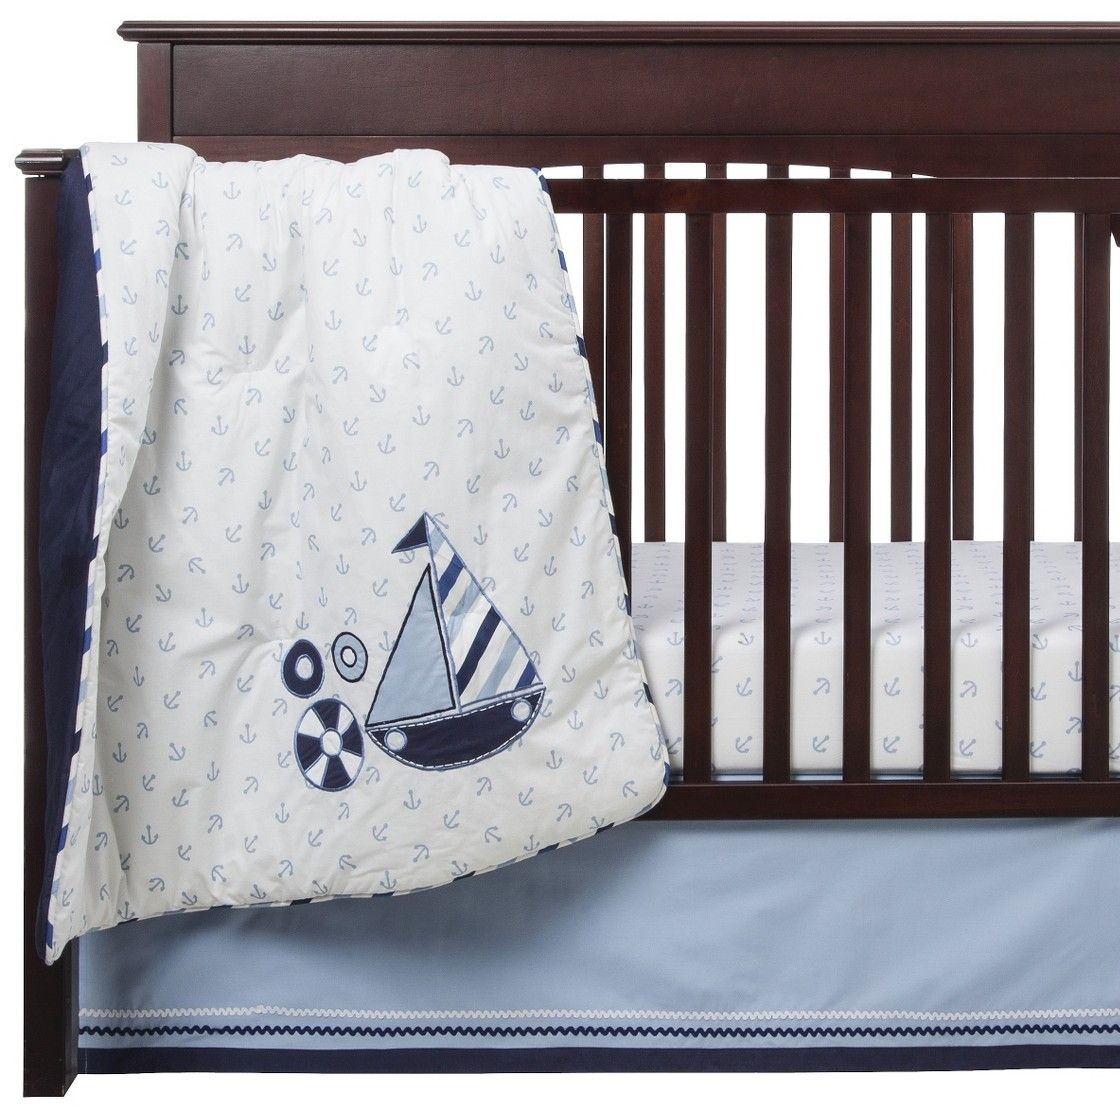 Bacati Crib Bedding Set 10pc Little Sailor Crib Bedding Sets Crib Sets Baby Bedding Sets